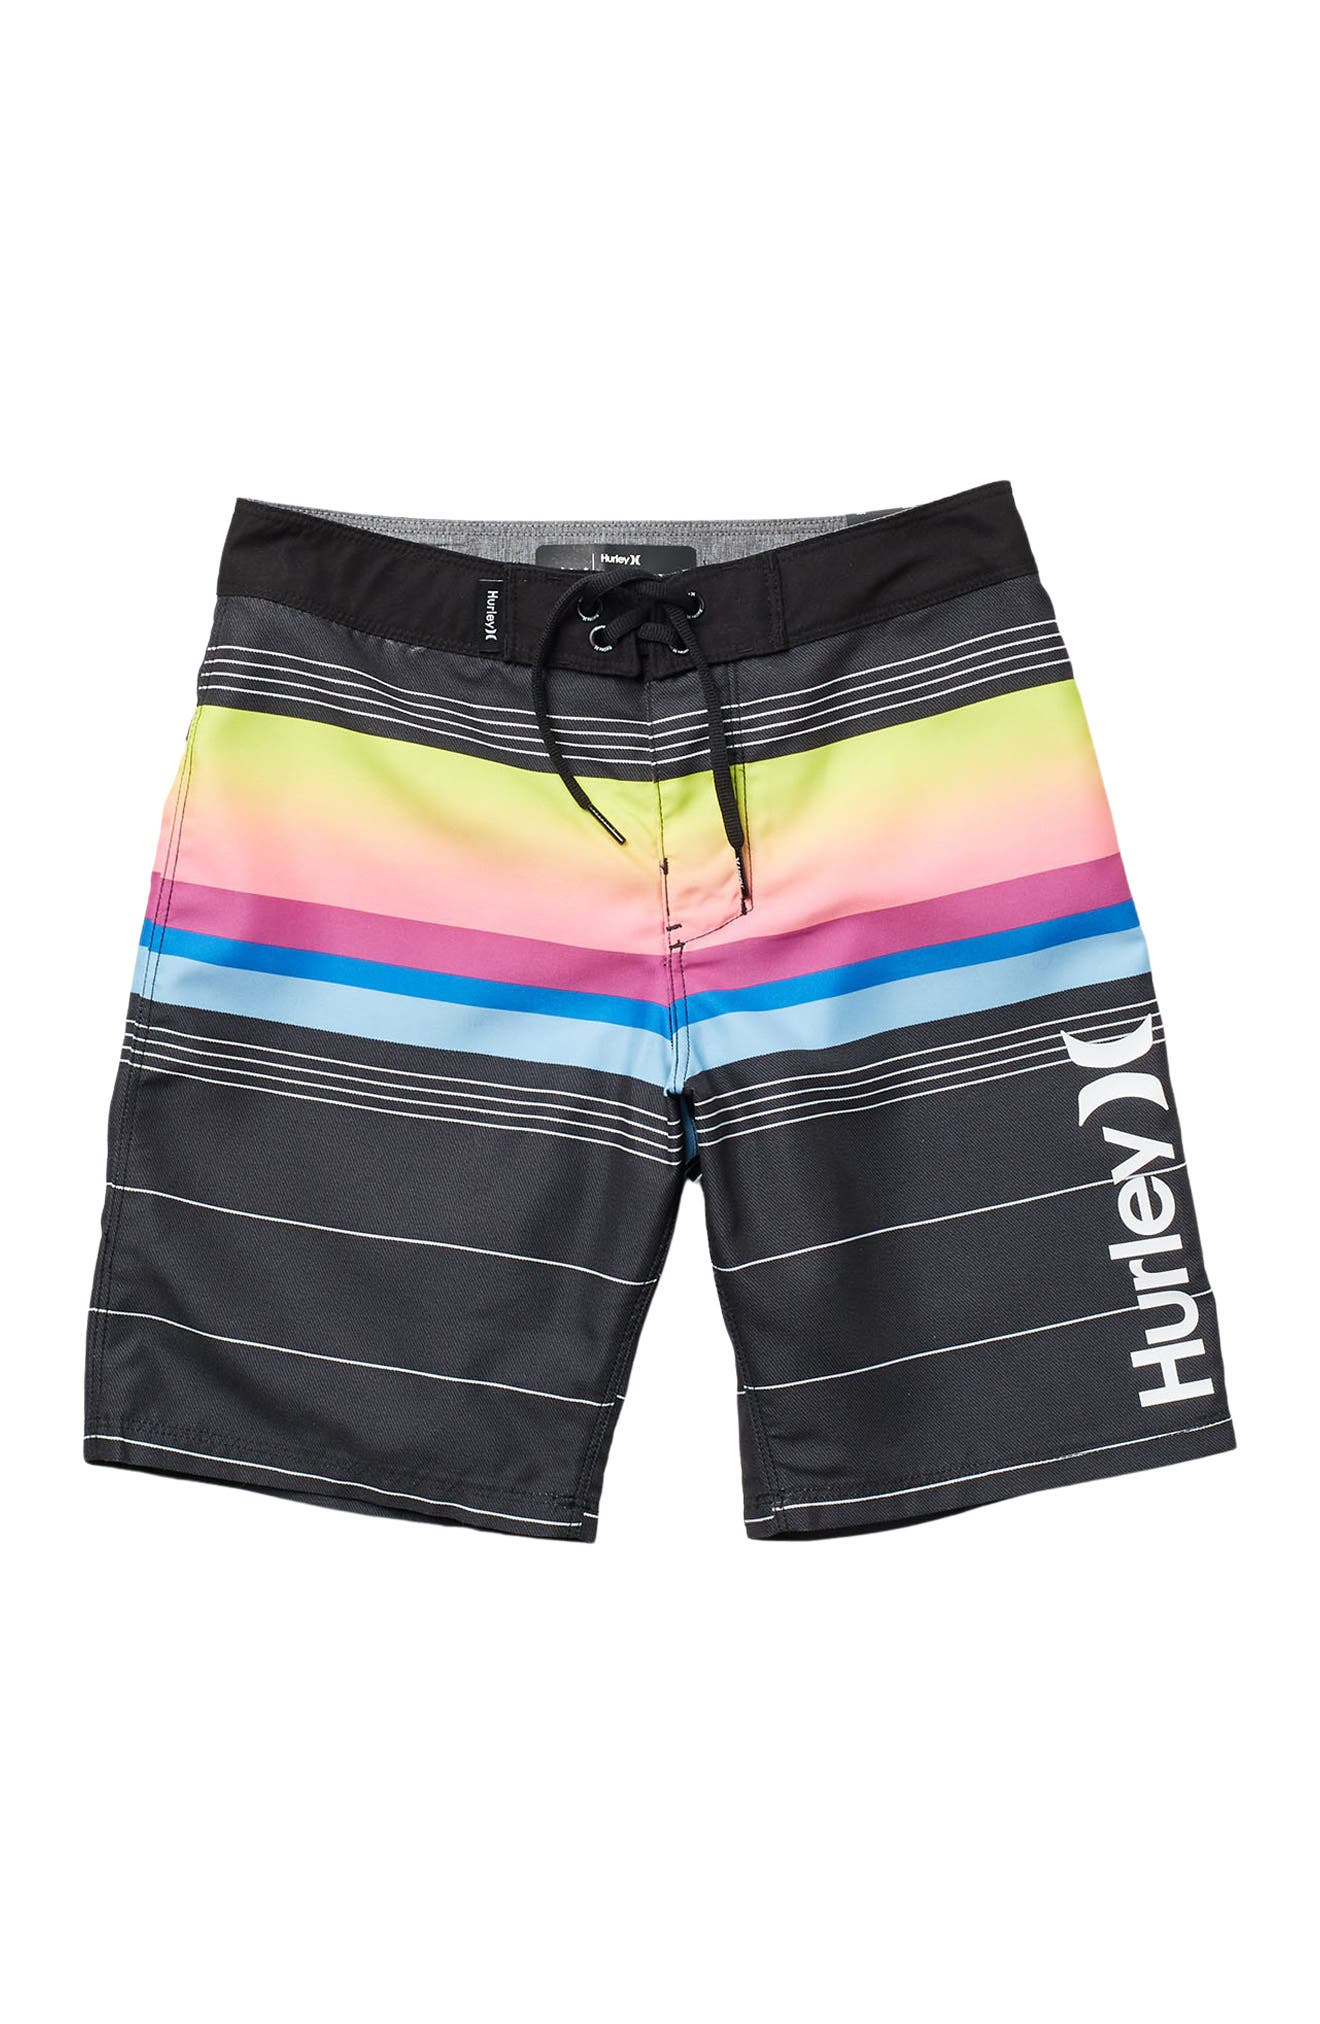 Image of Hurley Pacific Grove Boardshorts